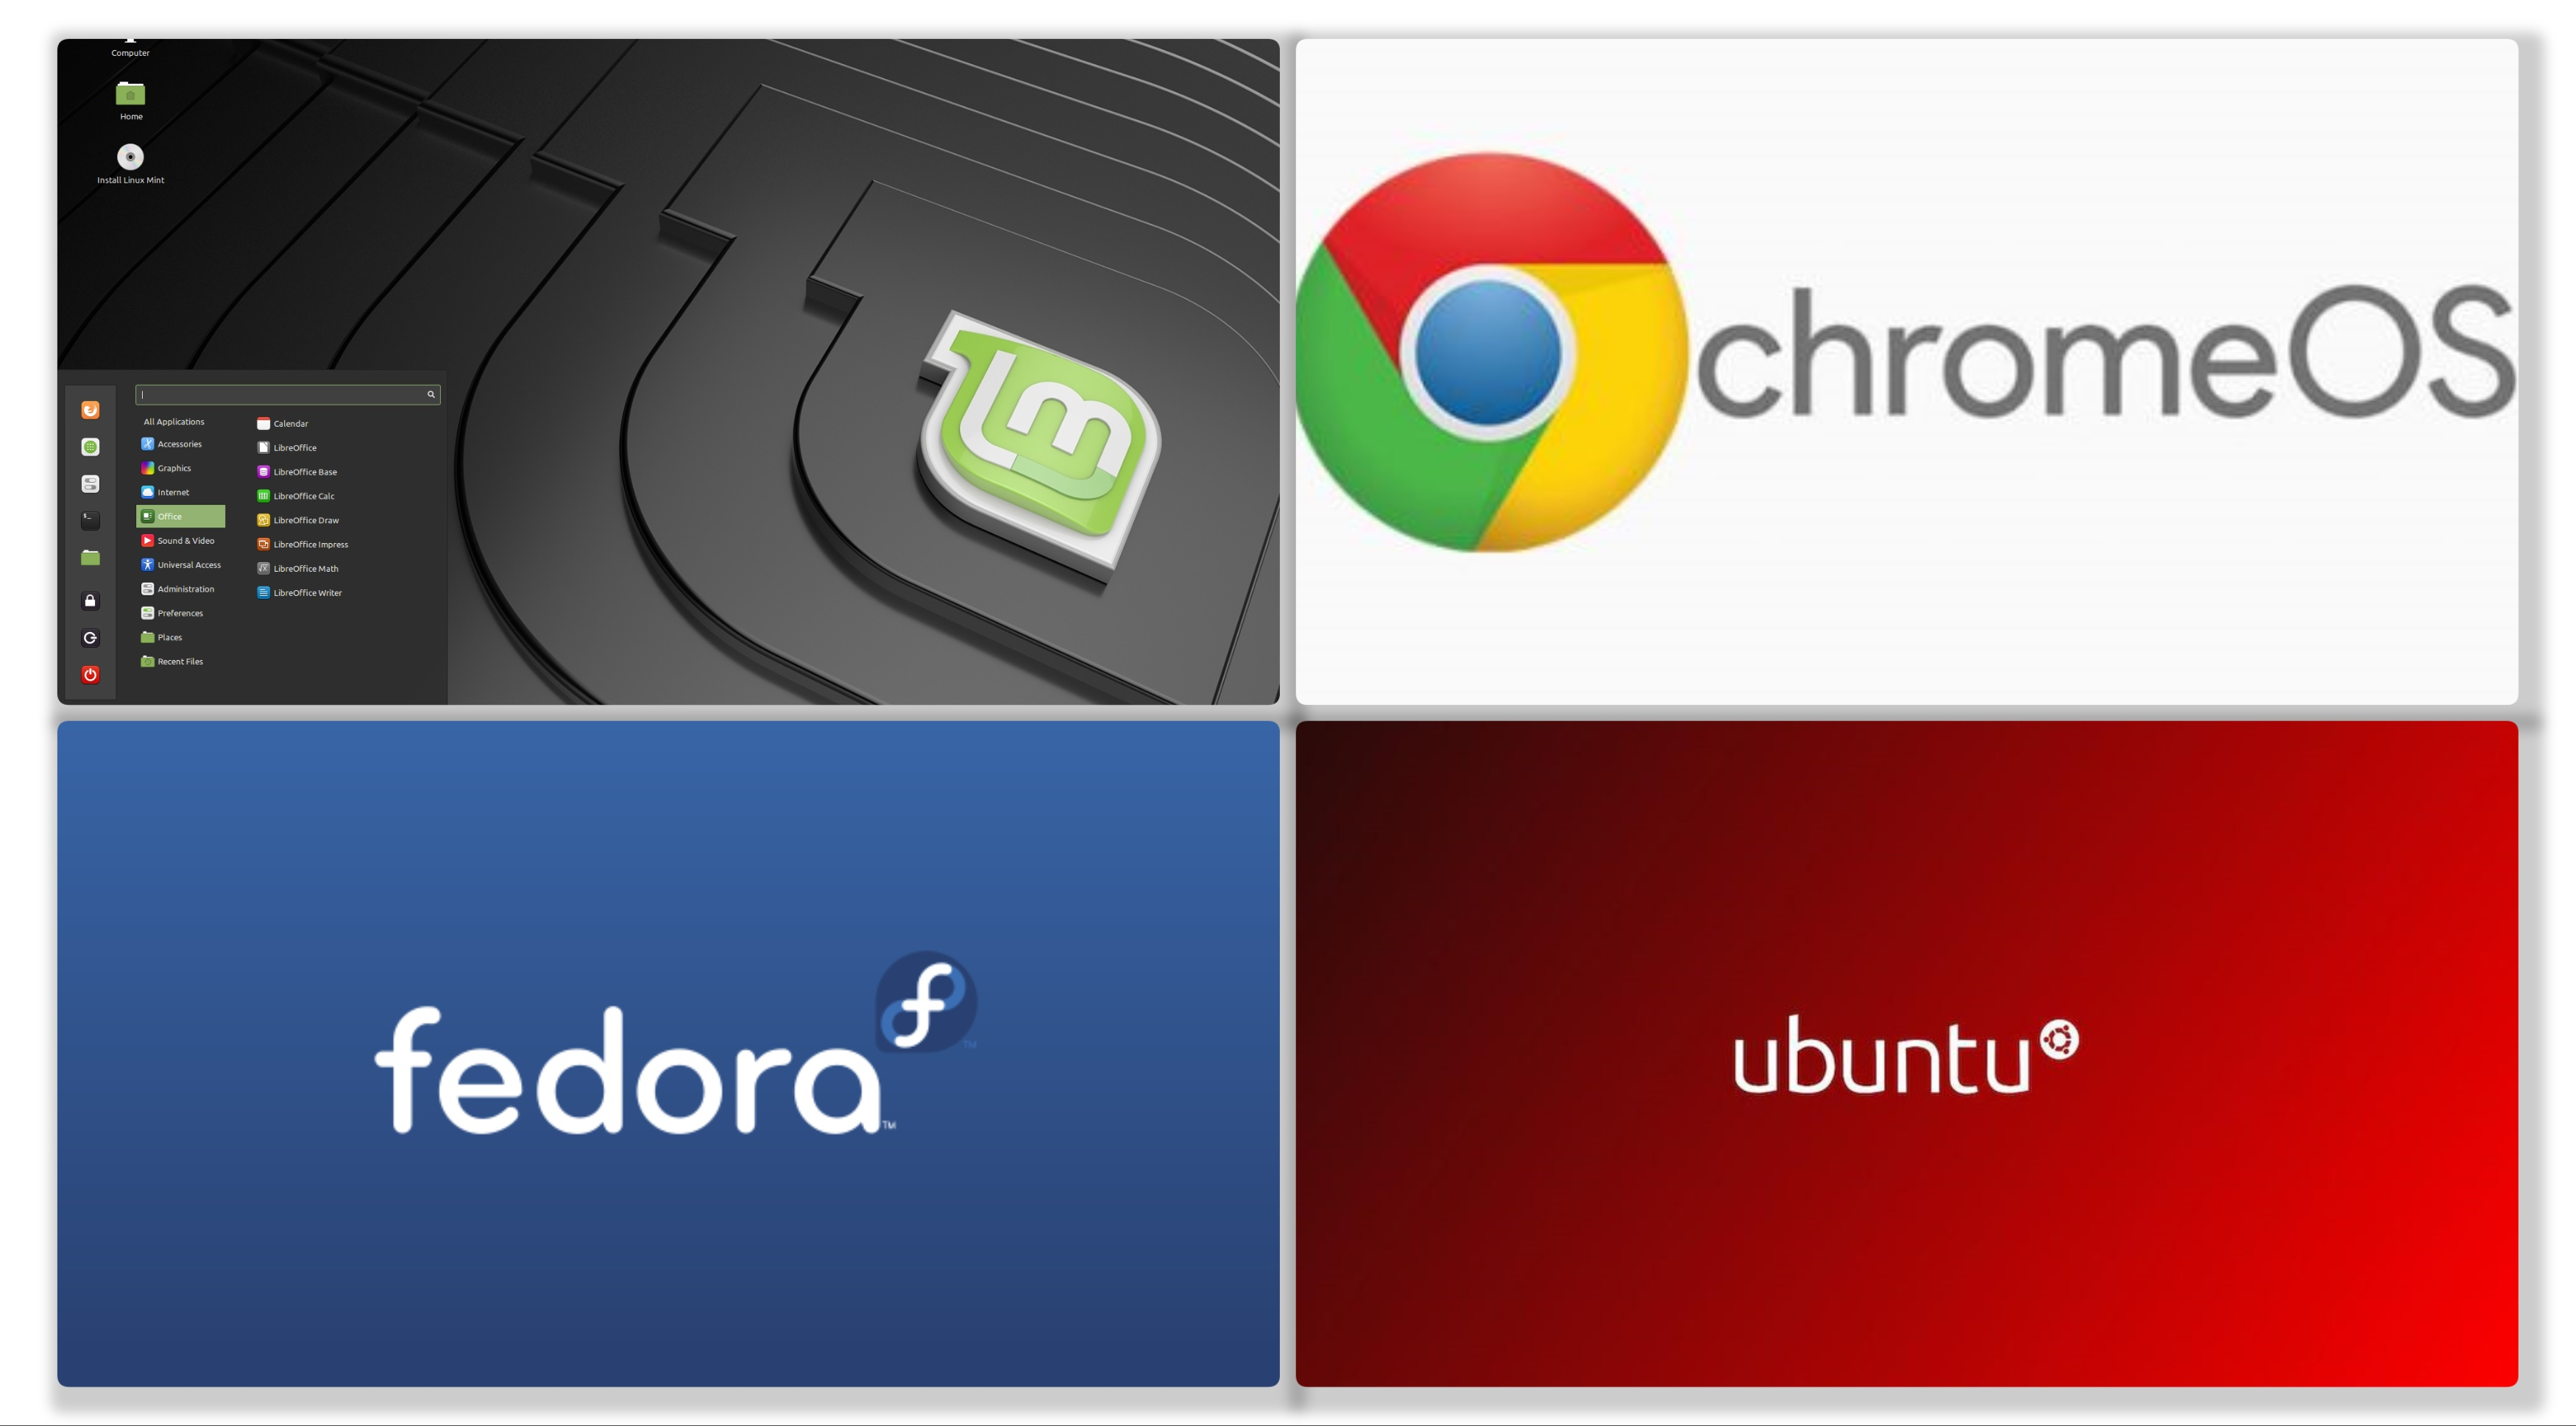 Linux on Desktop - Chrome OS, Fedora, Ubuntu and Linux Mint